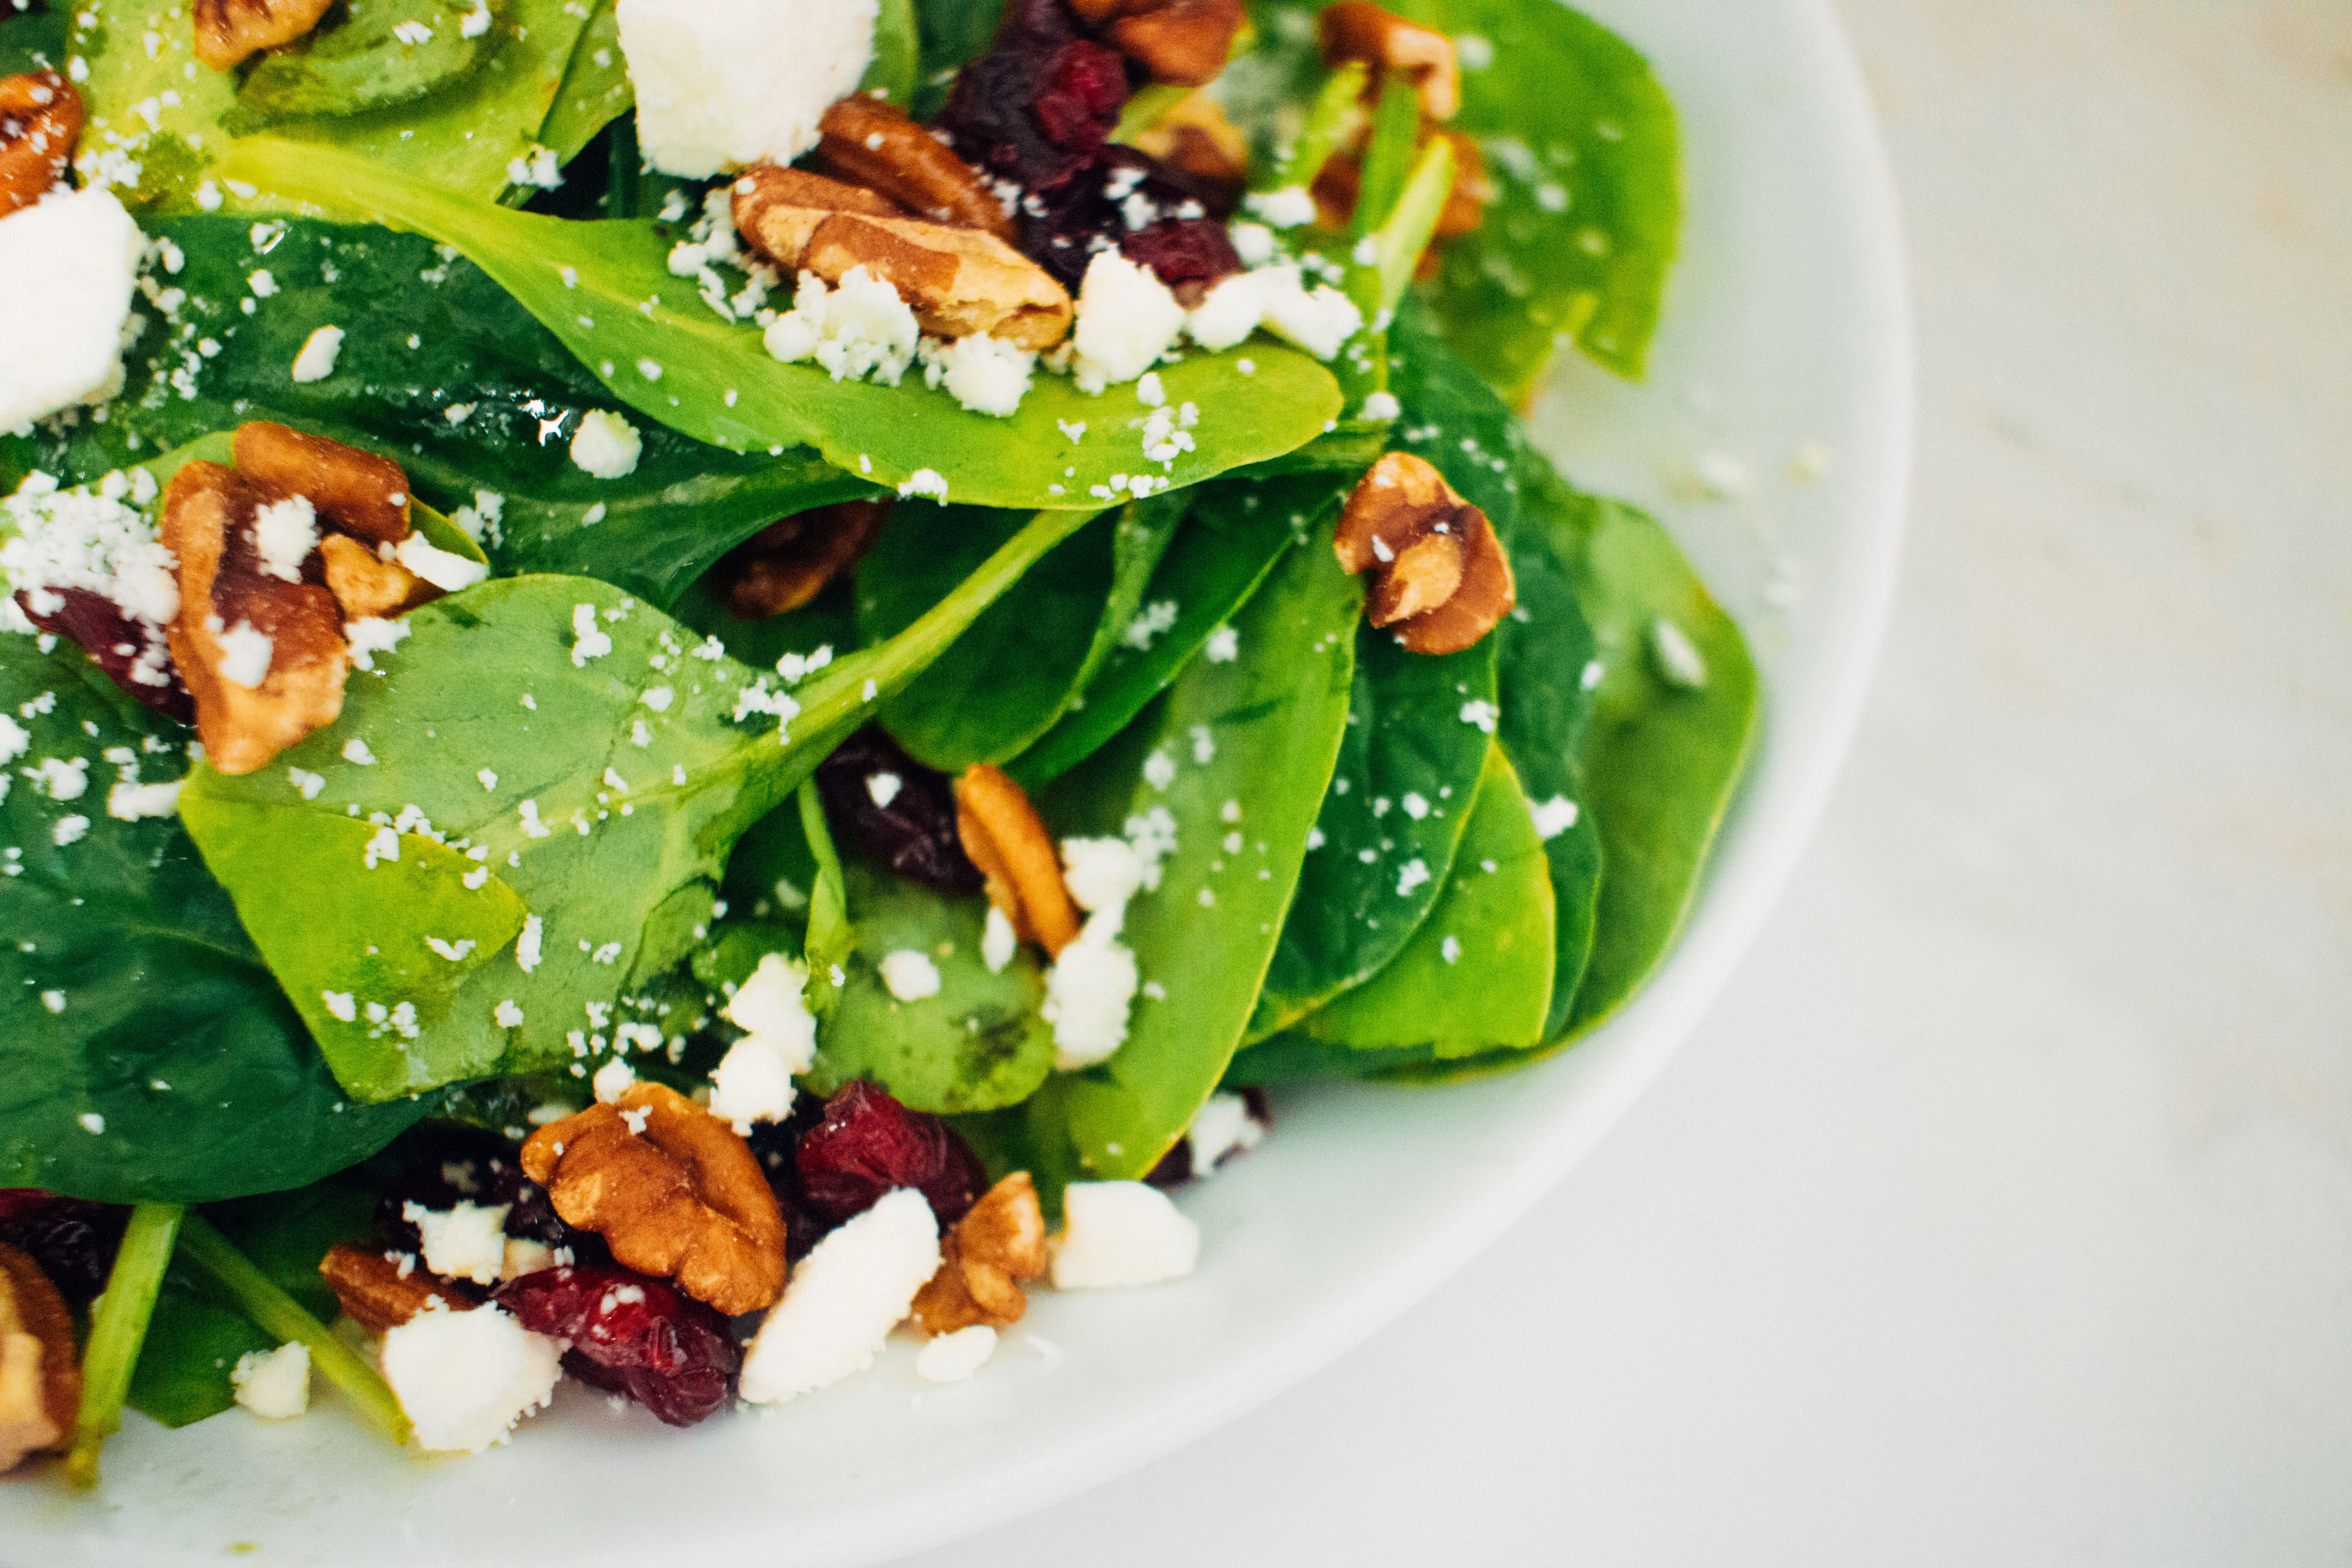 Cranberry Spinach Salad with Creamy Citrus Dressing in white bowl